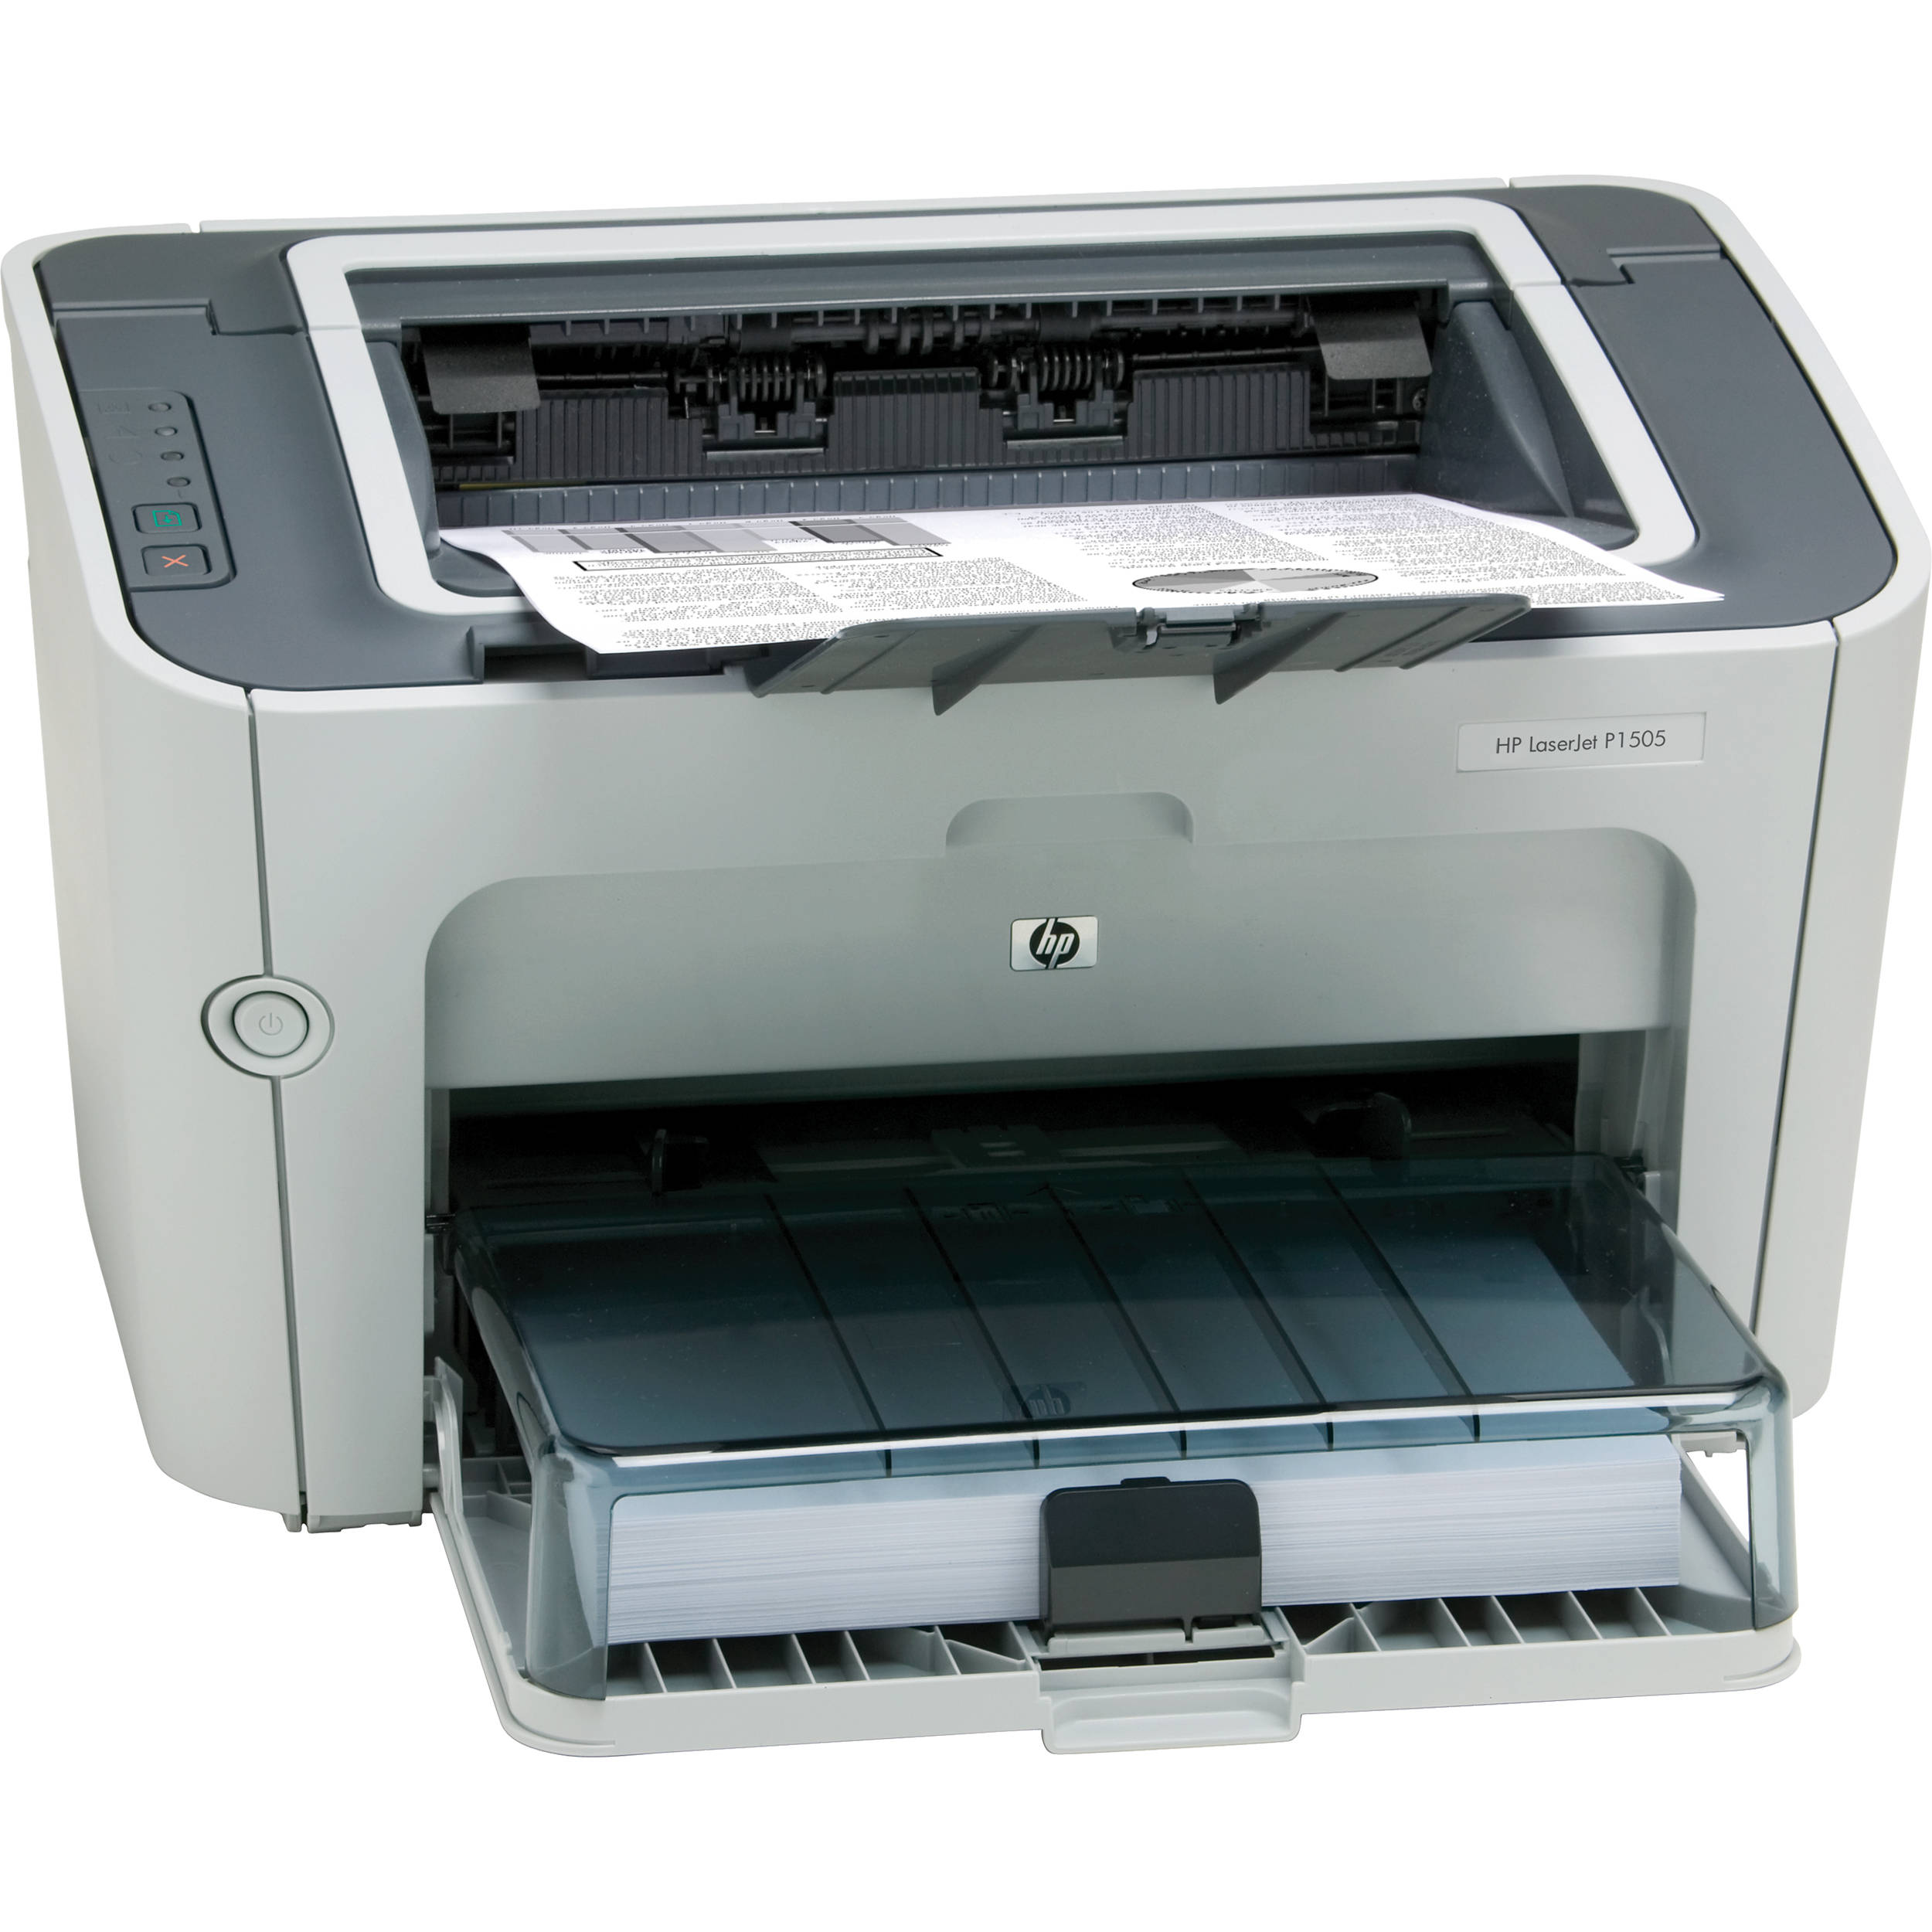 Принтер HP LaserJet P1505 Printer